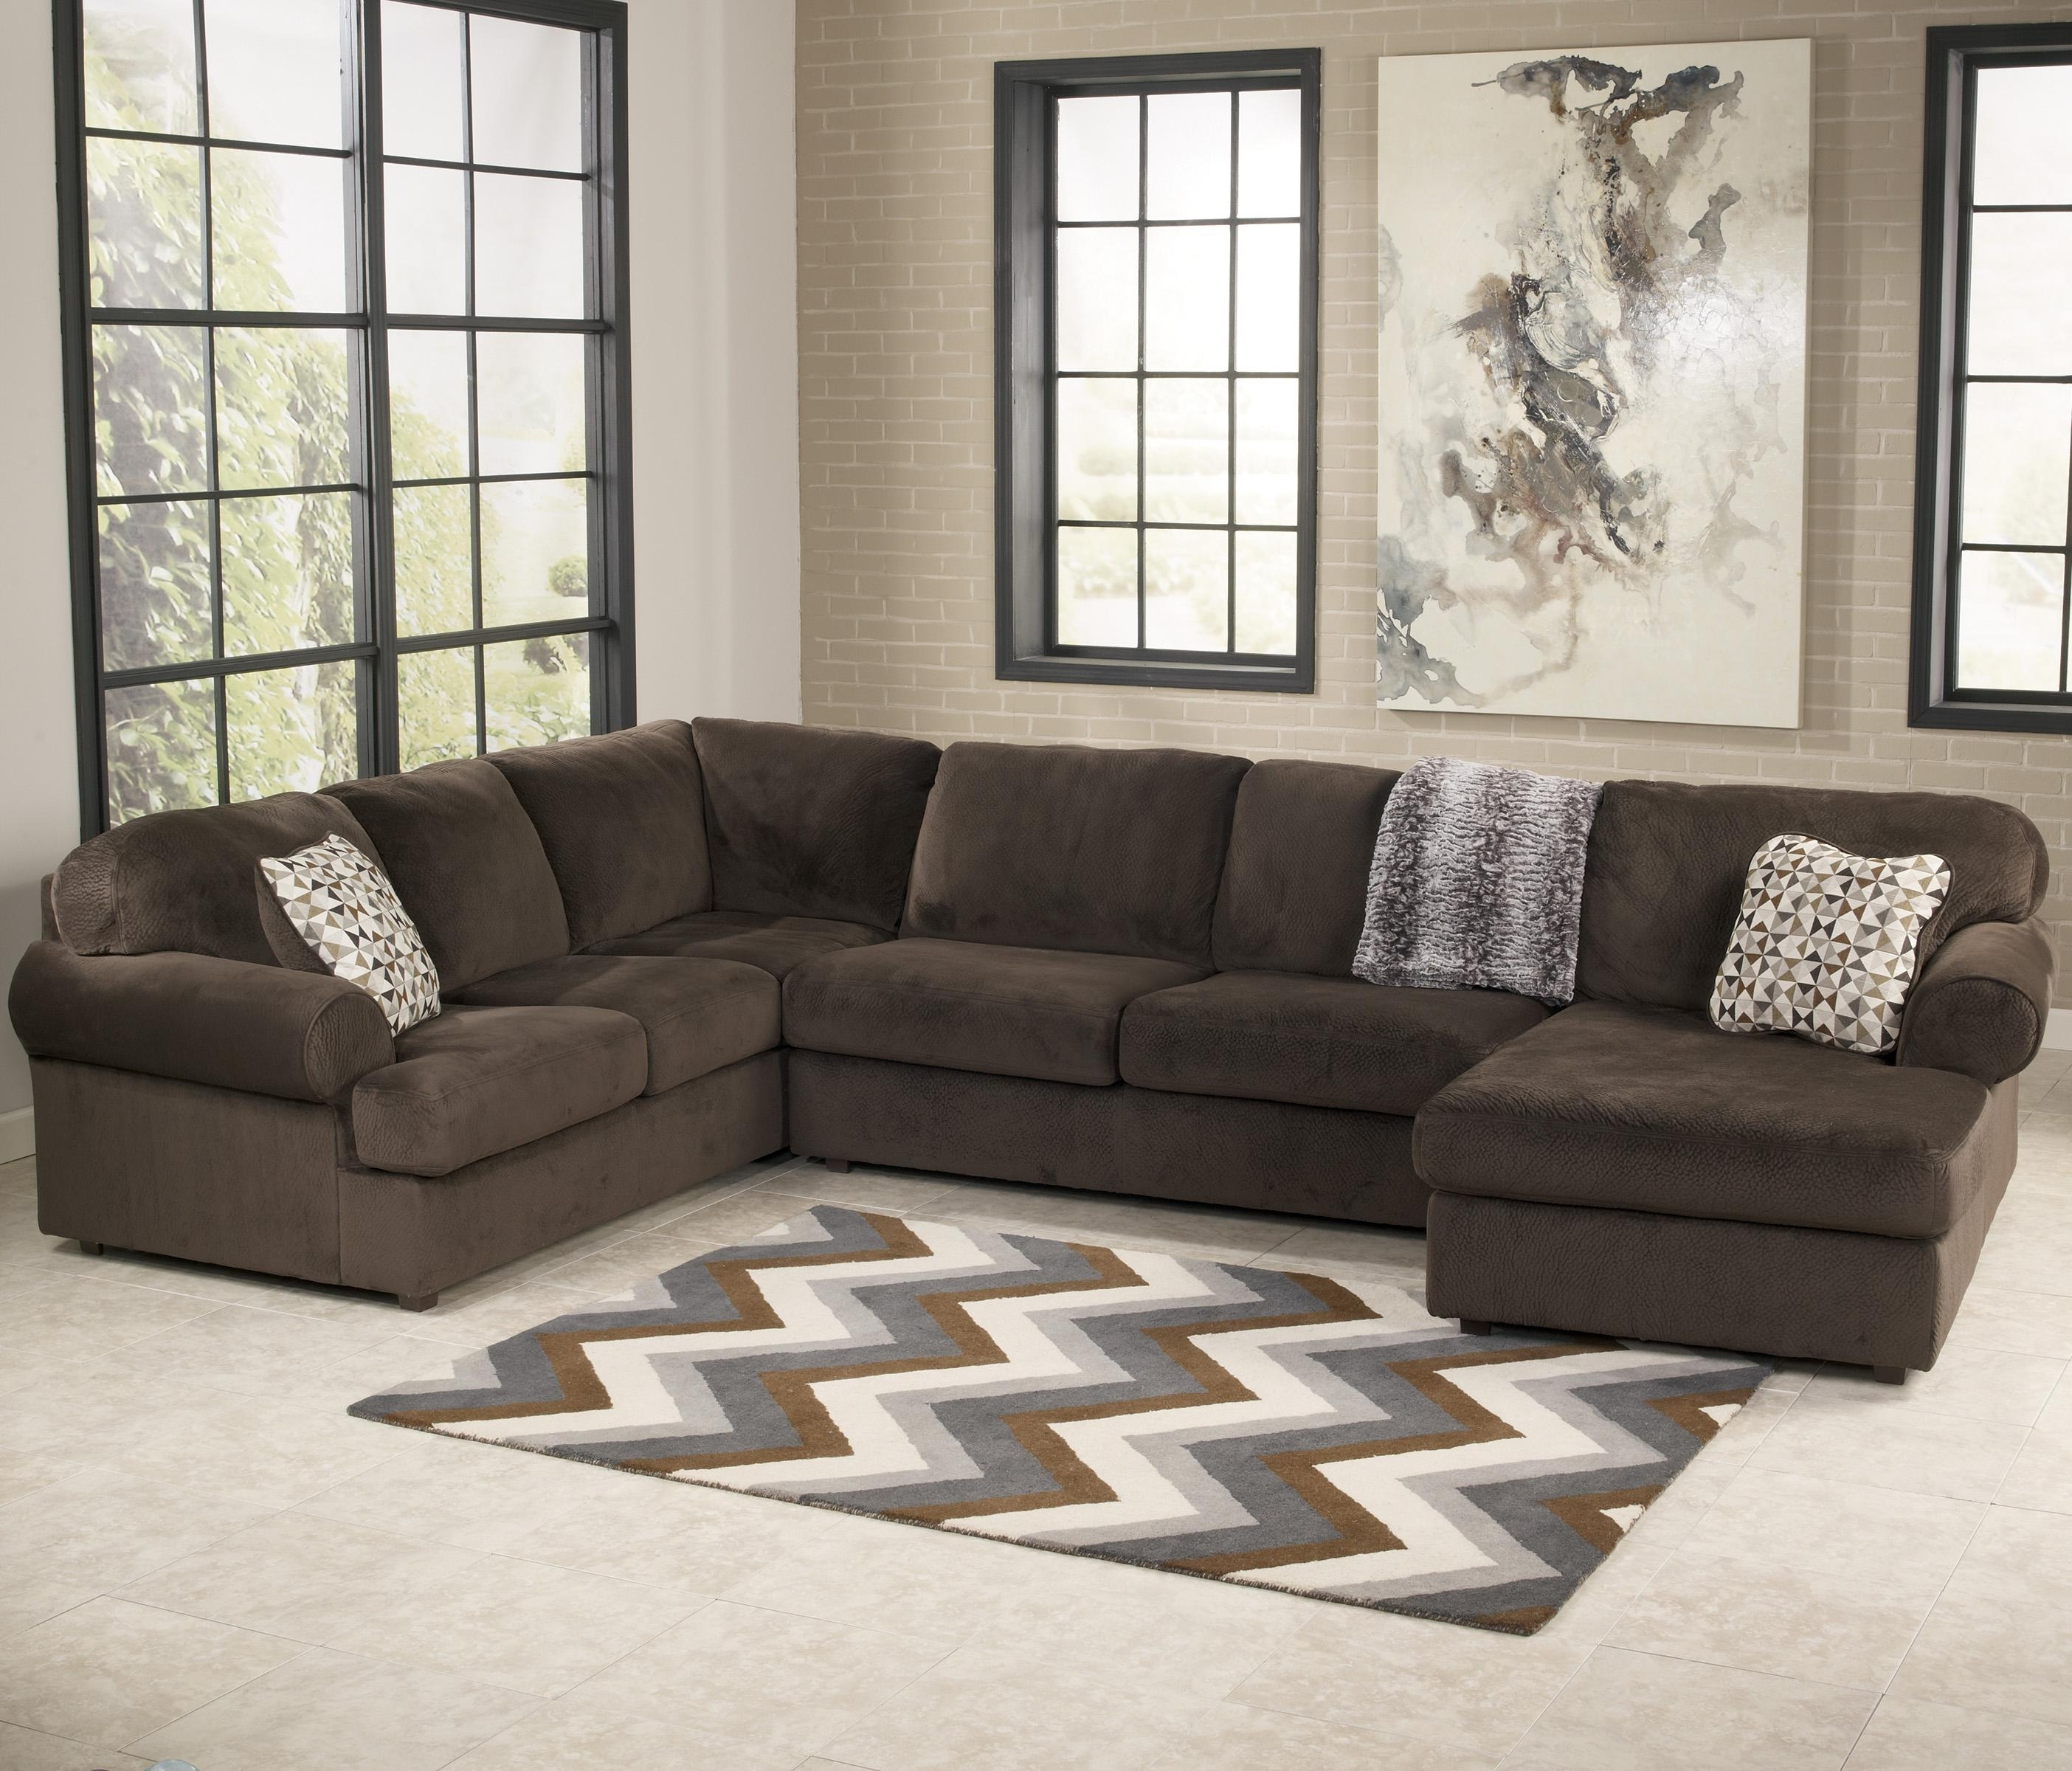 Signature Designashley Jessa Place – Chocolate Casual Intended For Fashionable East Bay Sectional Sofas (View 13 of 15)